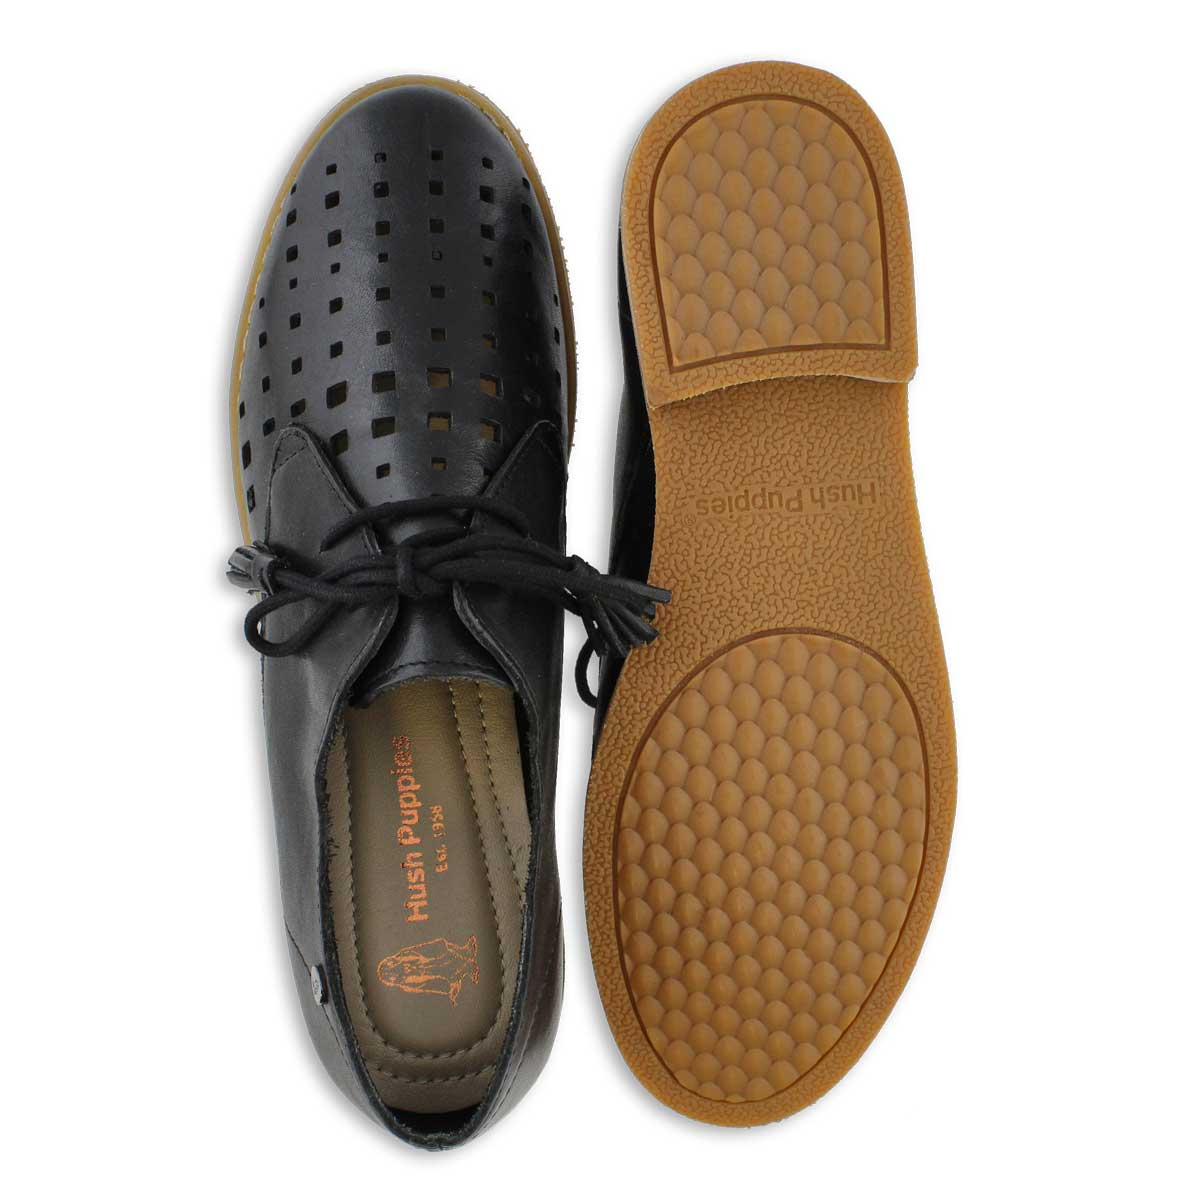 Lds Chardon black casual oxford